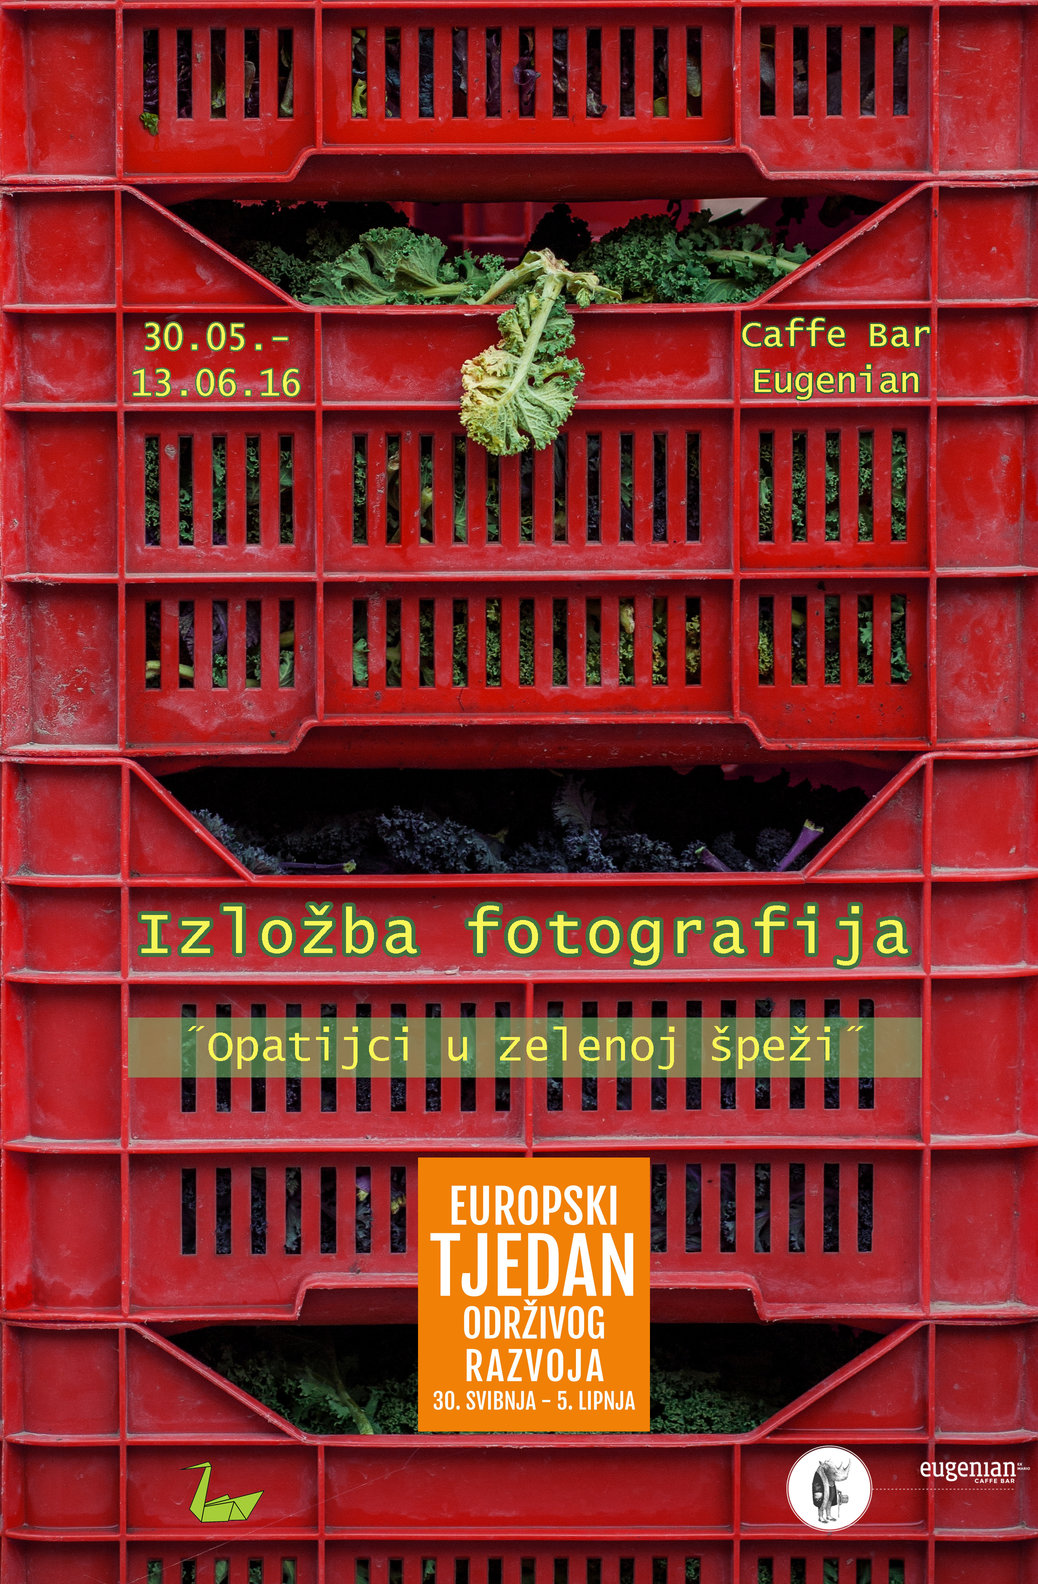 rsz_fb_poster_for_photo_exibition